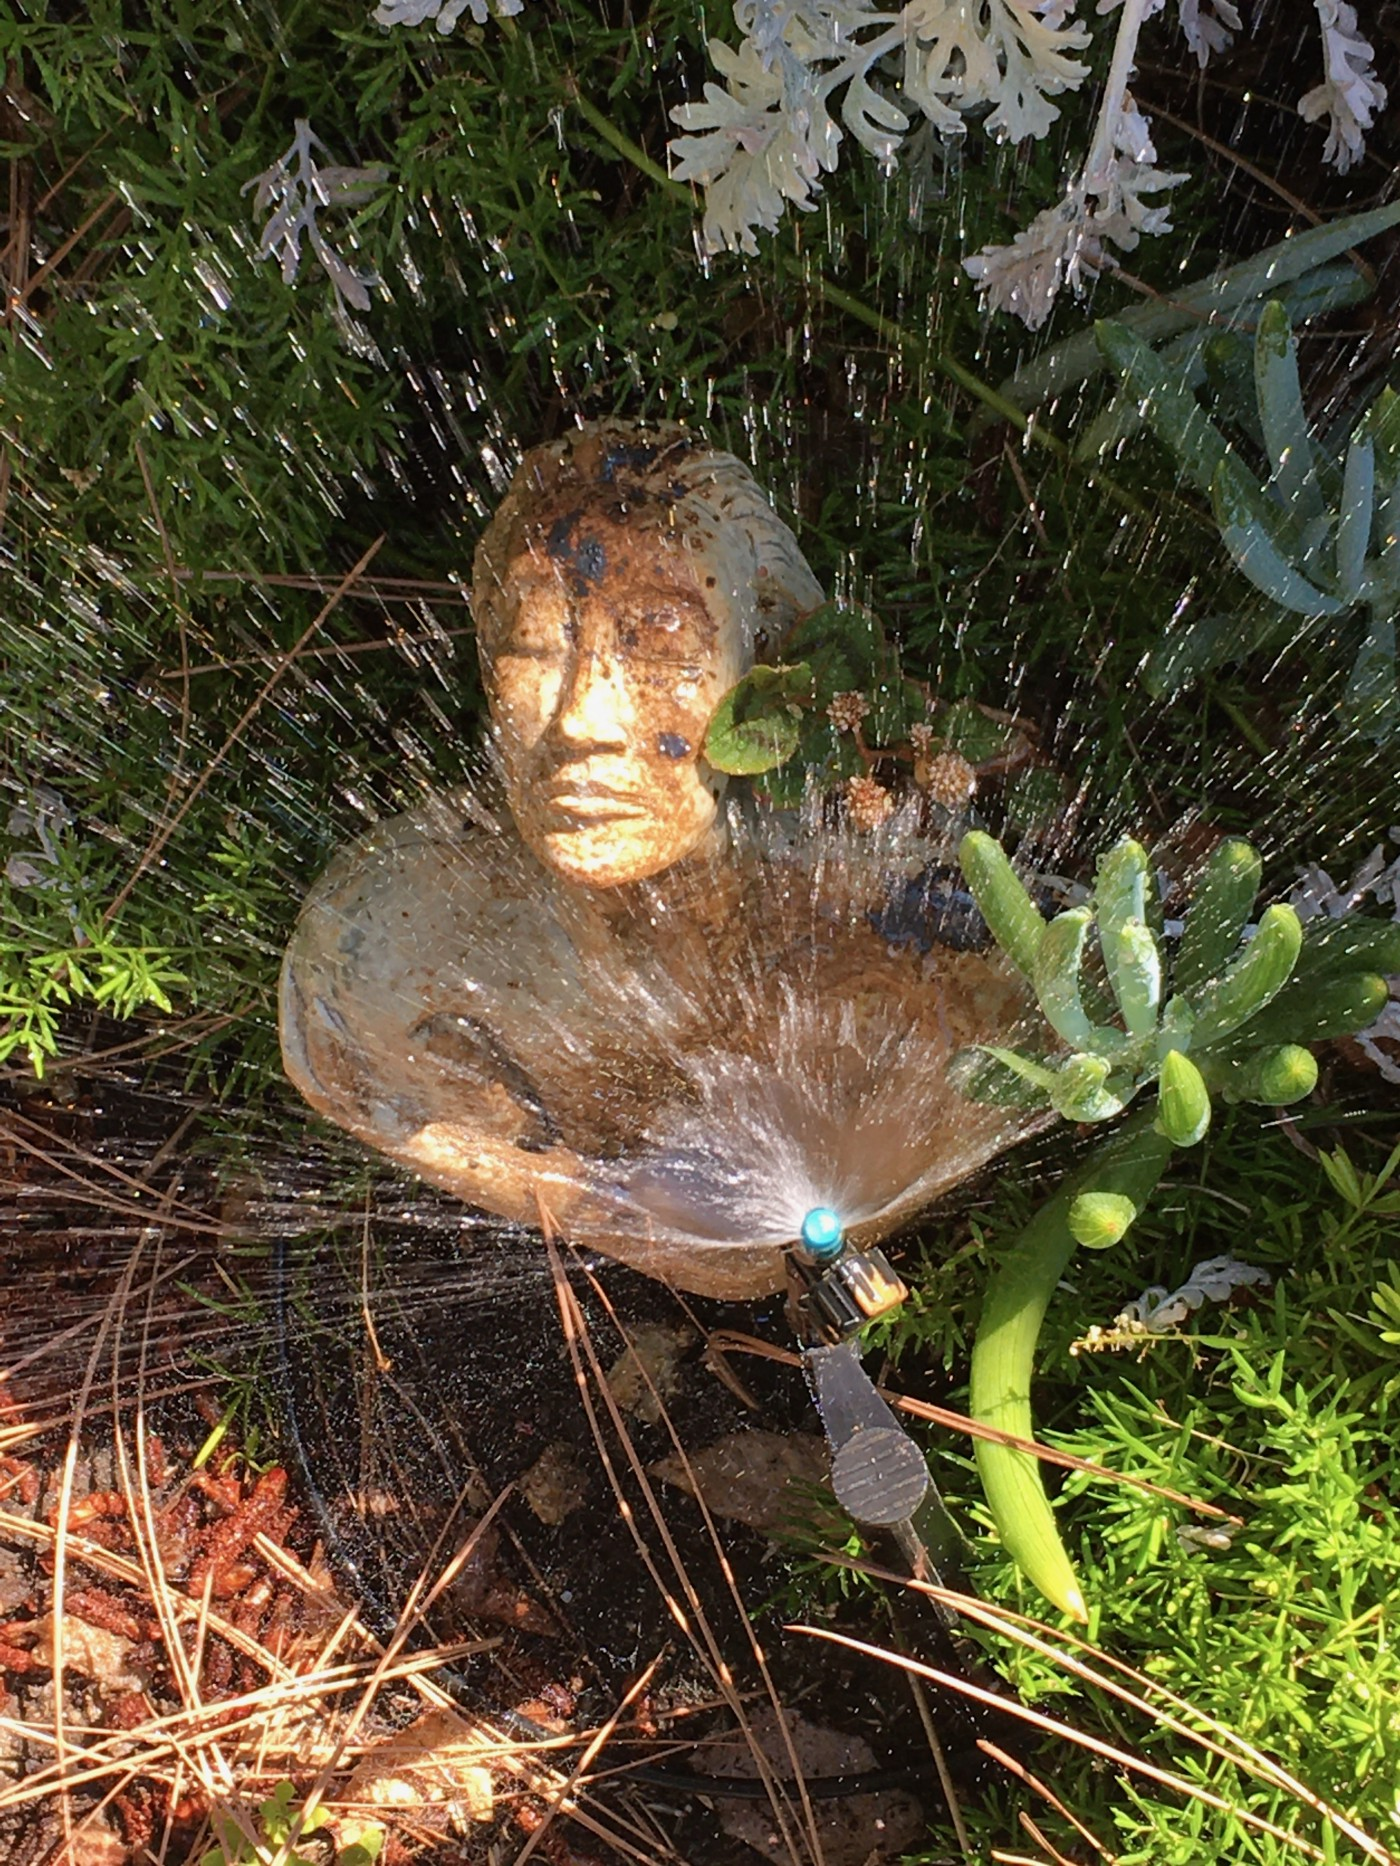 Sculpture of woma with hands reaching across chest together, eyes closed, sprinkler sprinkling water ovr her. She sits by cactus and lants.